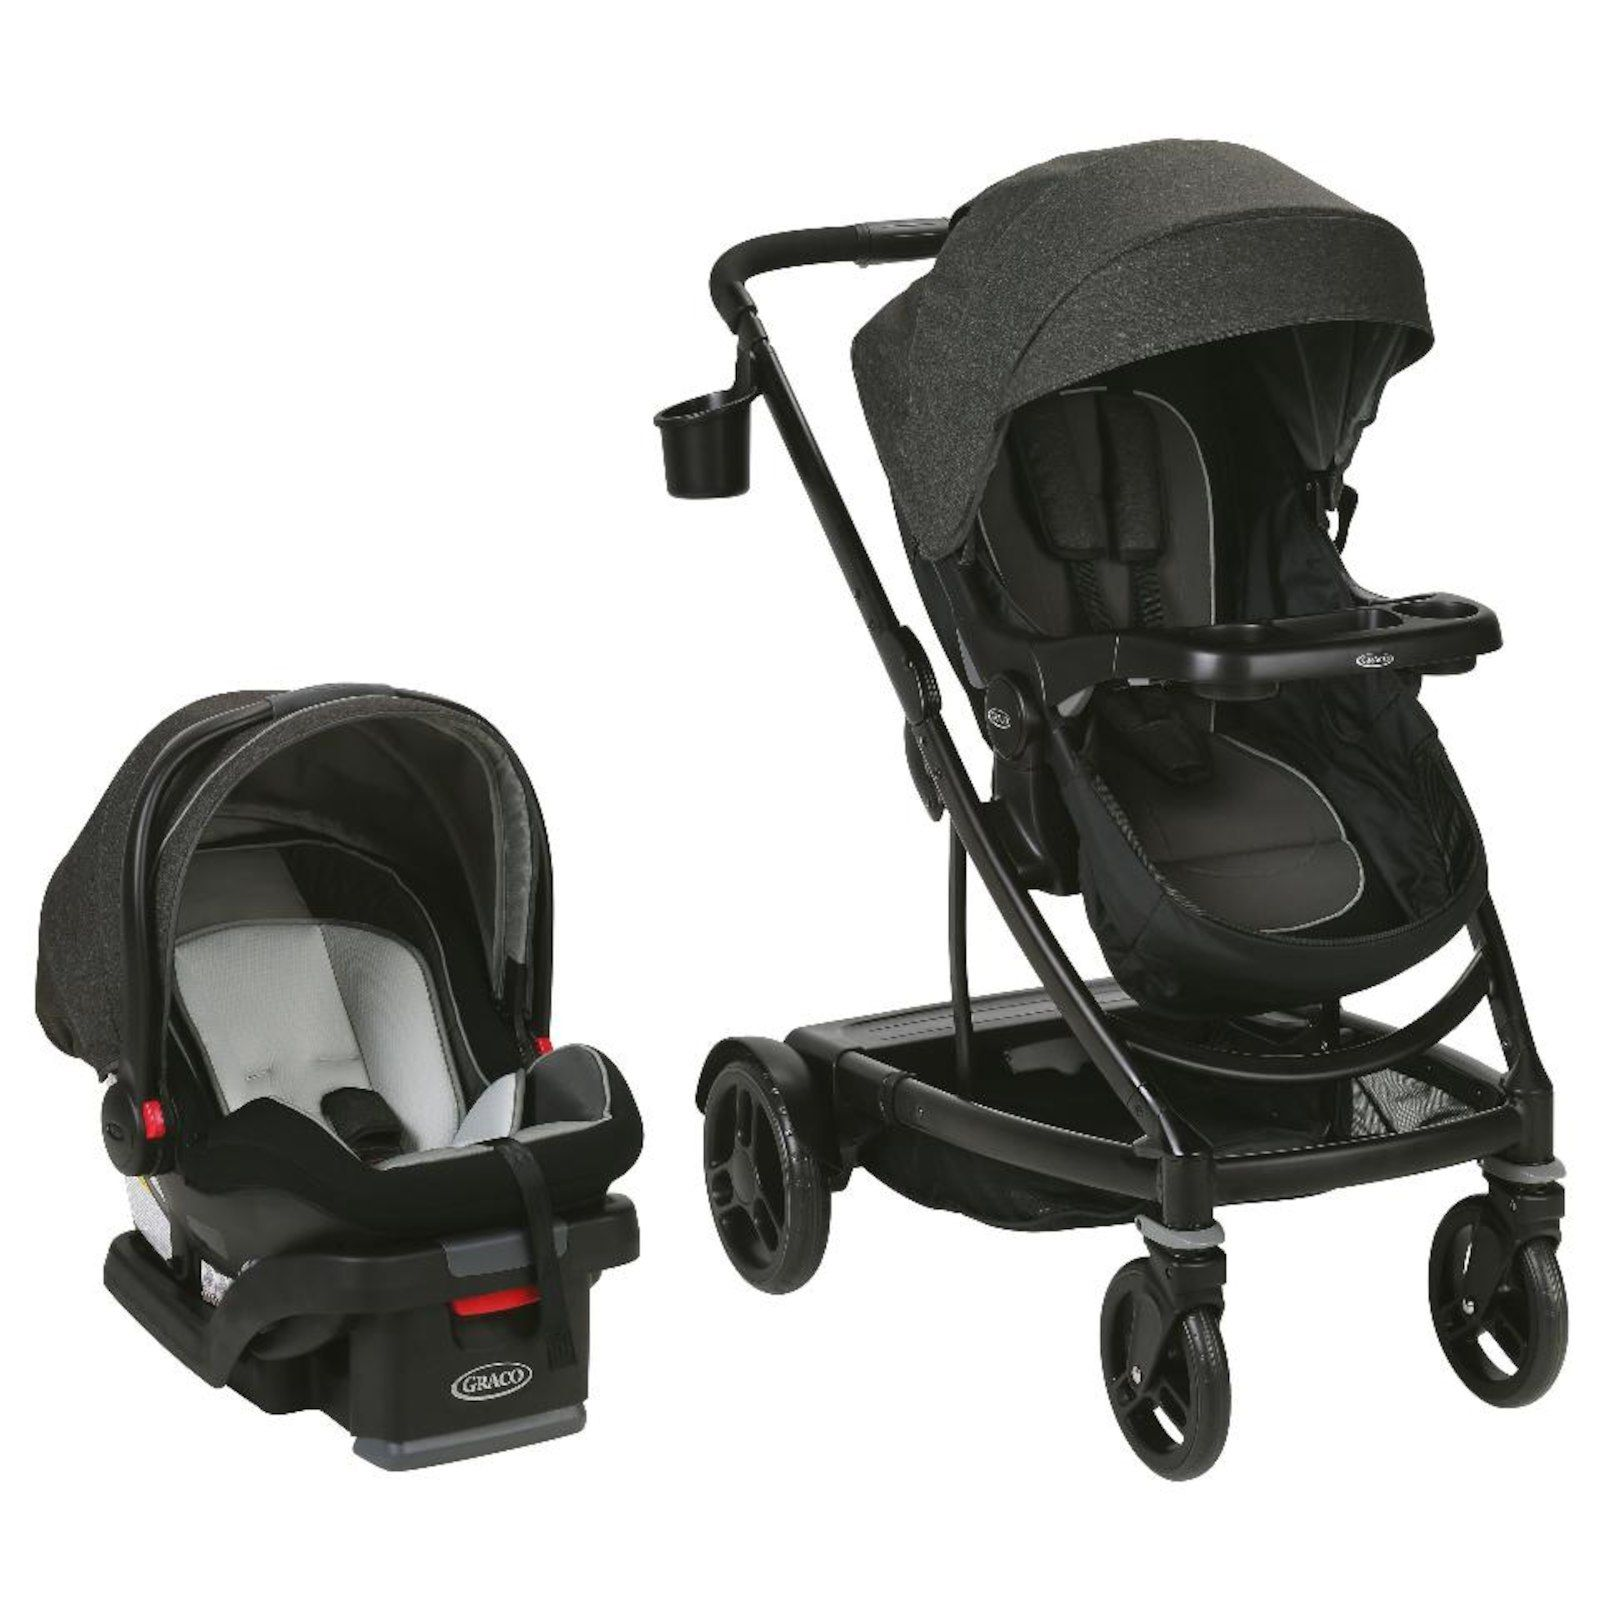 The Uno2Duo Travel System starts out as a single Stroller